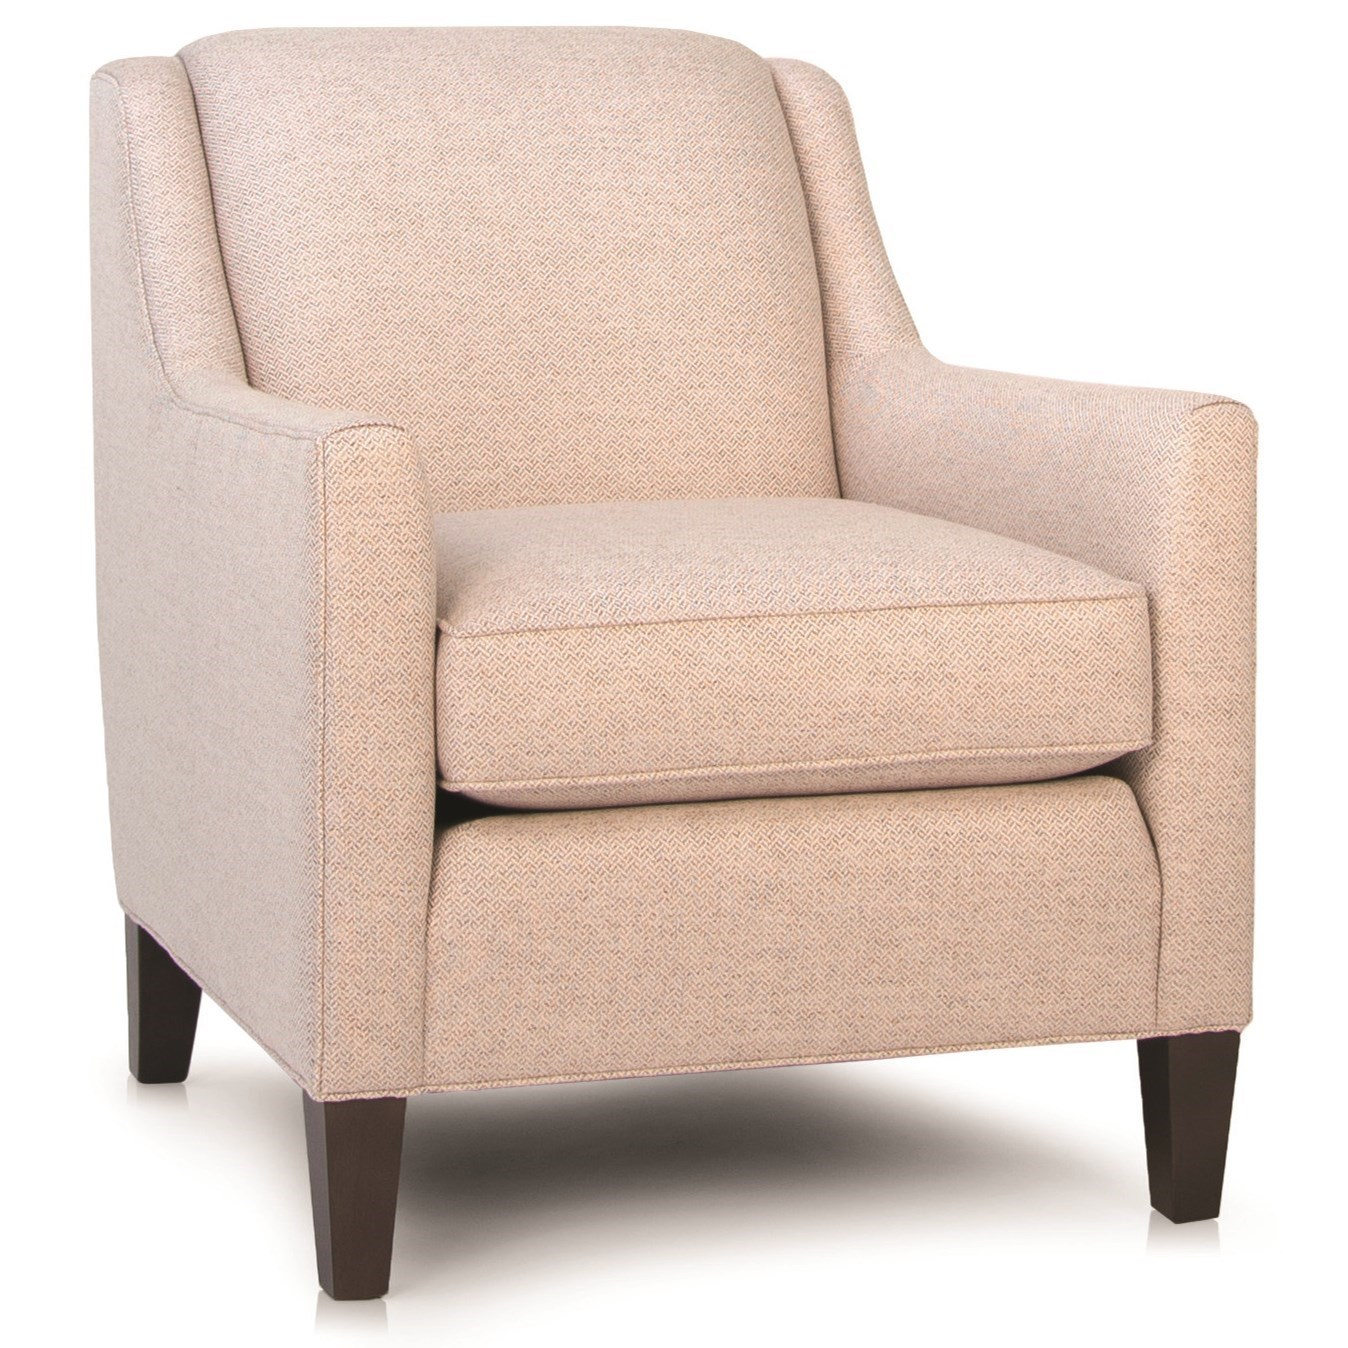 248 Chair by Smith Brothers at Sprintz Furniture